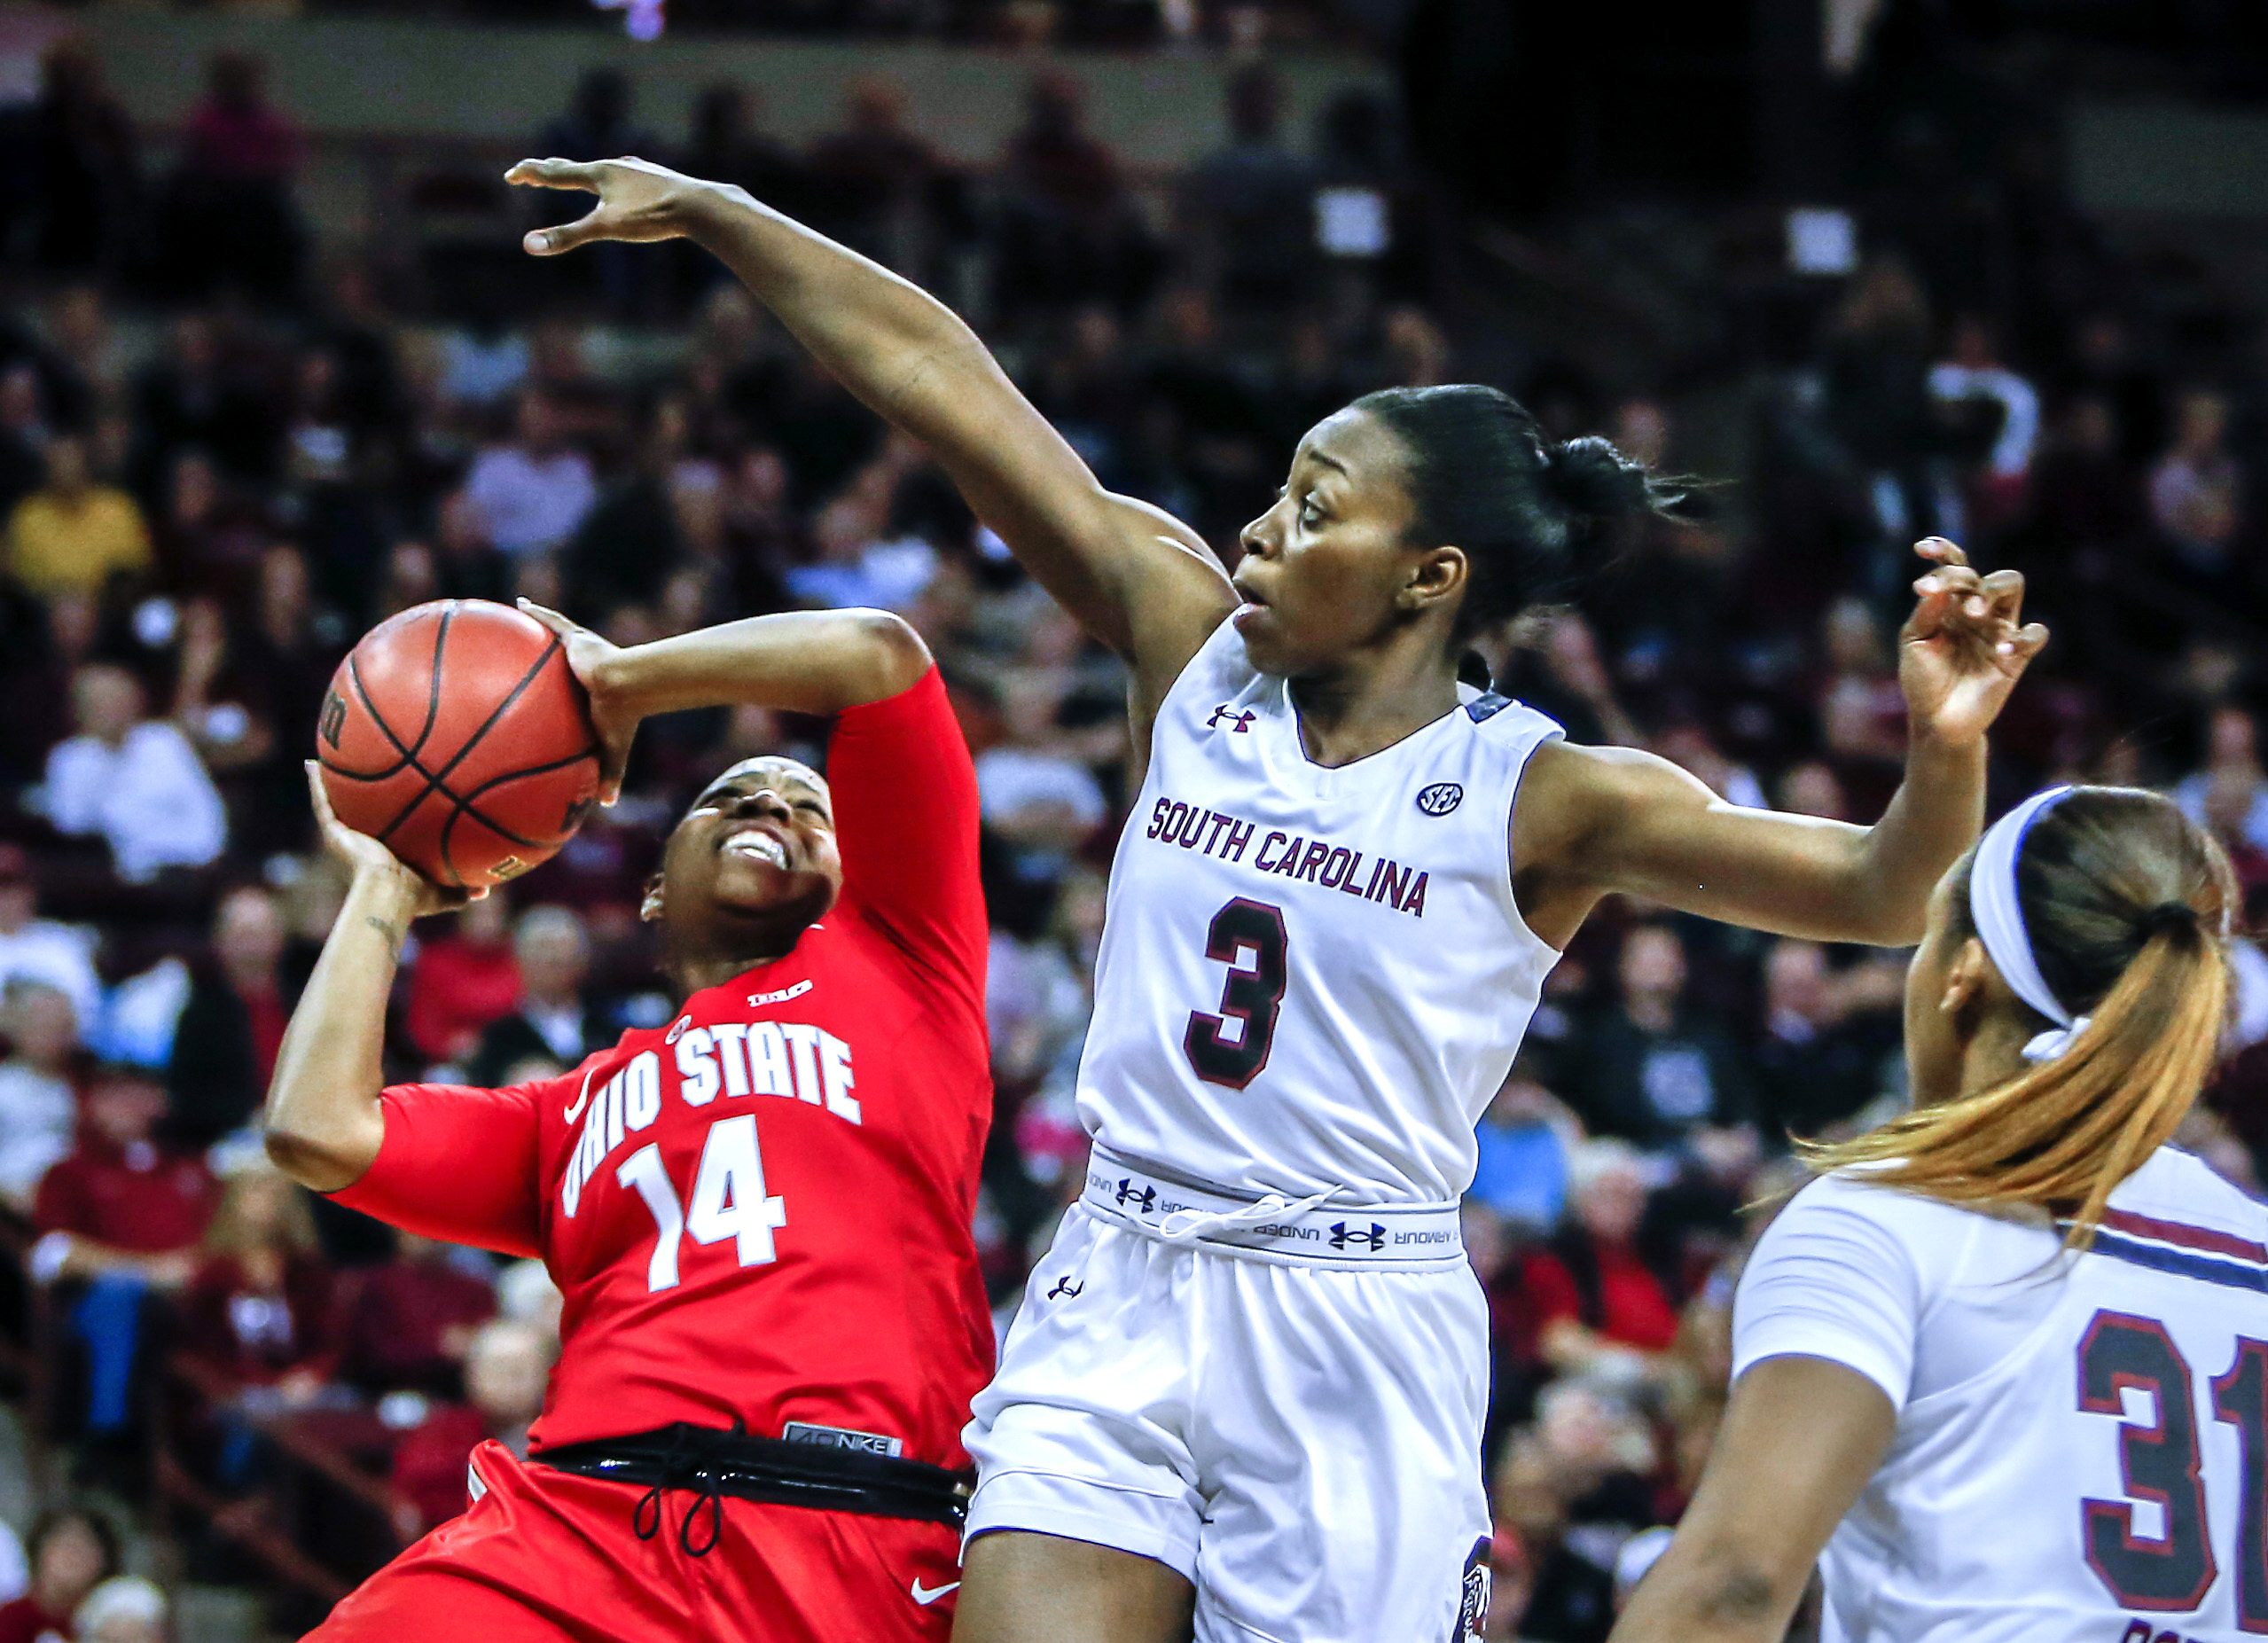 South Carolina guard Khadijah Sessions (5) defends Ohio State guard Ameryst Alston (14) during the first half of an NCAA college basketball game, Friday, Nov. 13, 2015, in Columbia, S.C. (AP Photo/Stephen B. Morton)